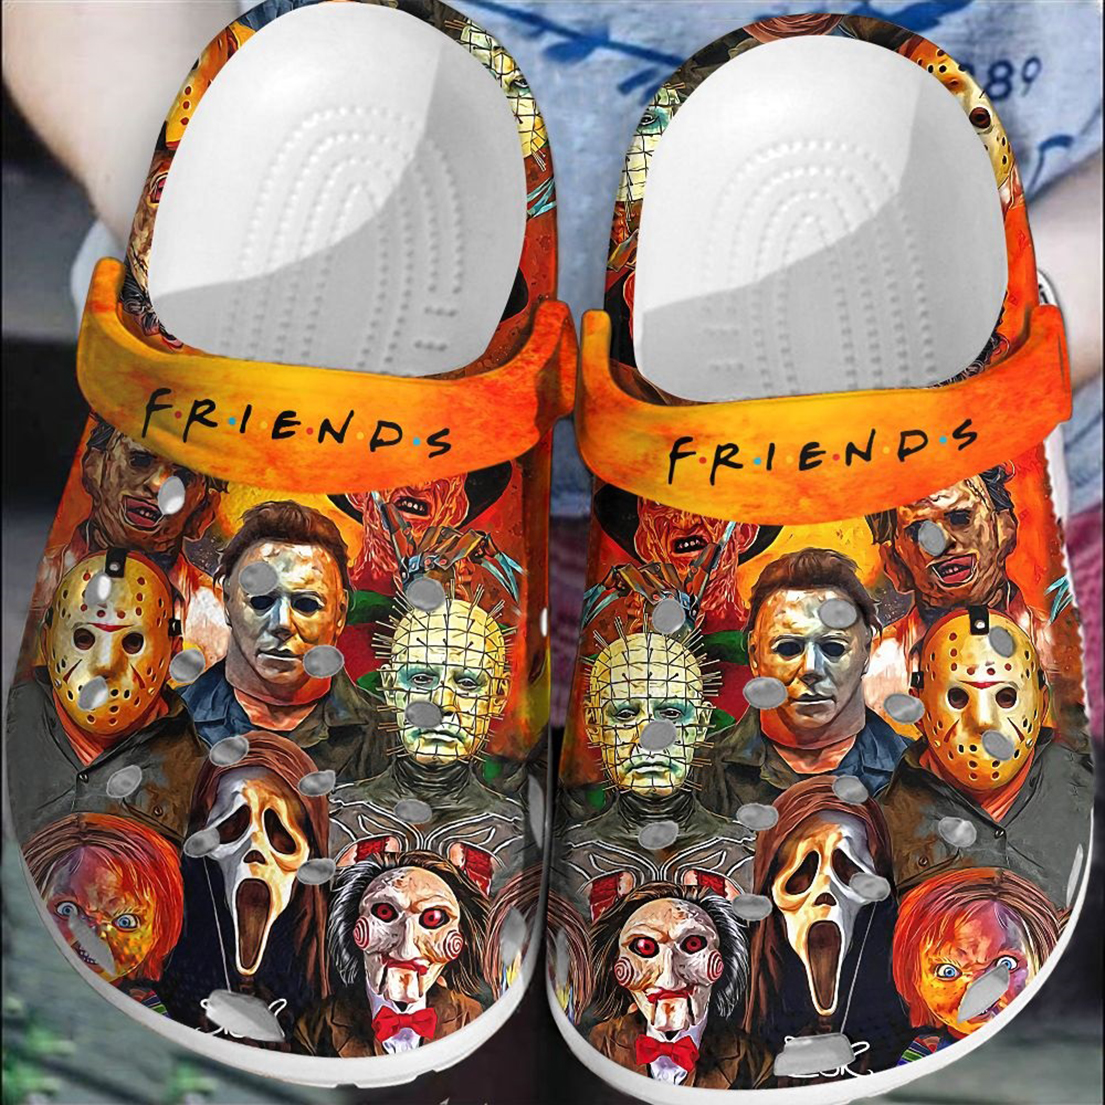 Friends show halloween horror characters crocband crocs shoes - Picture 1